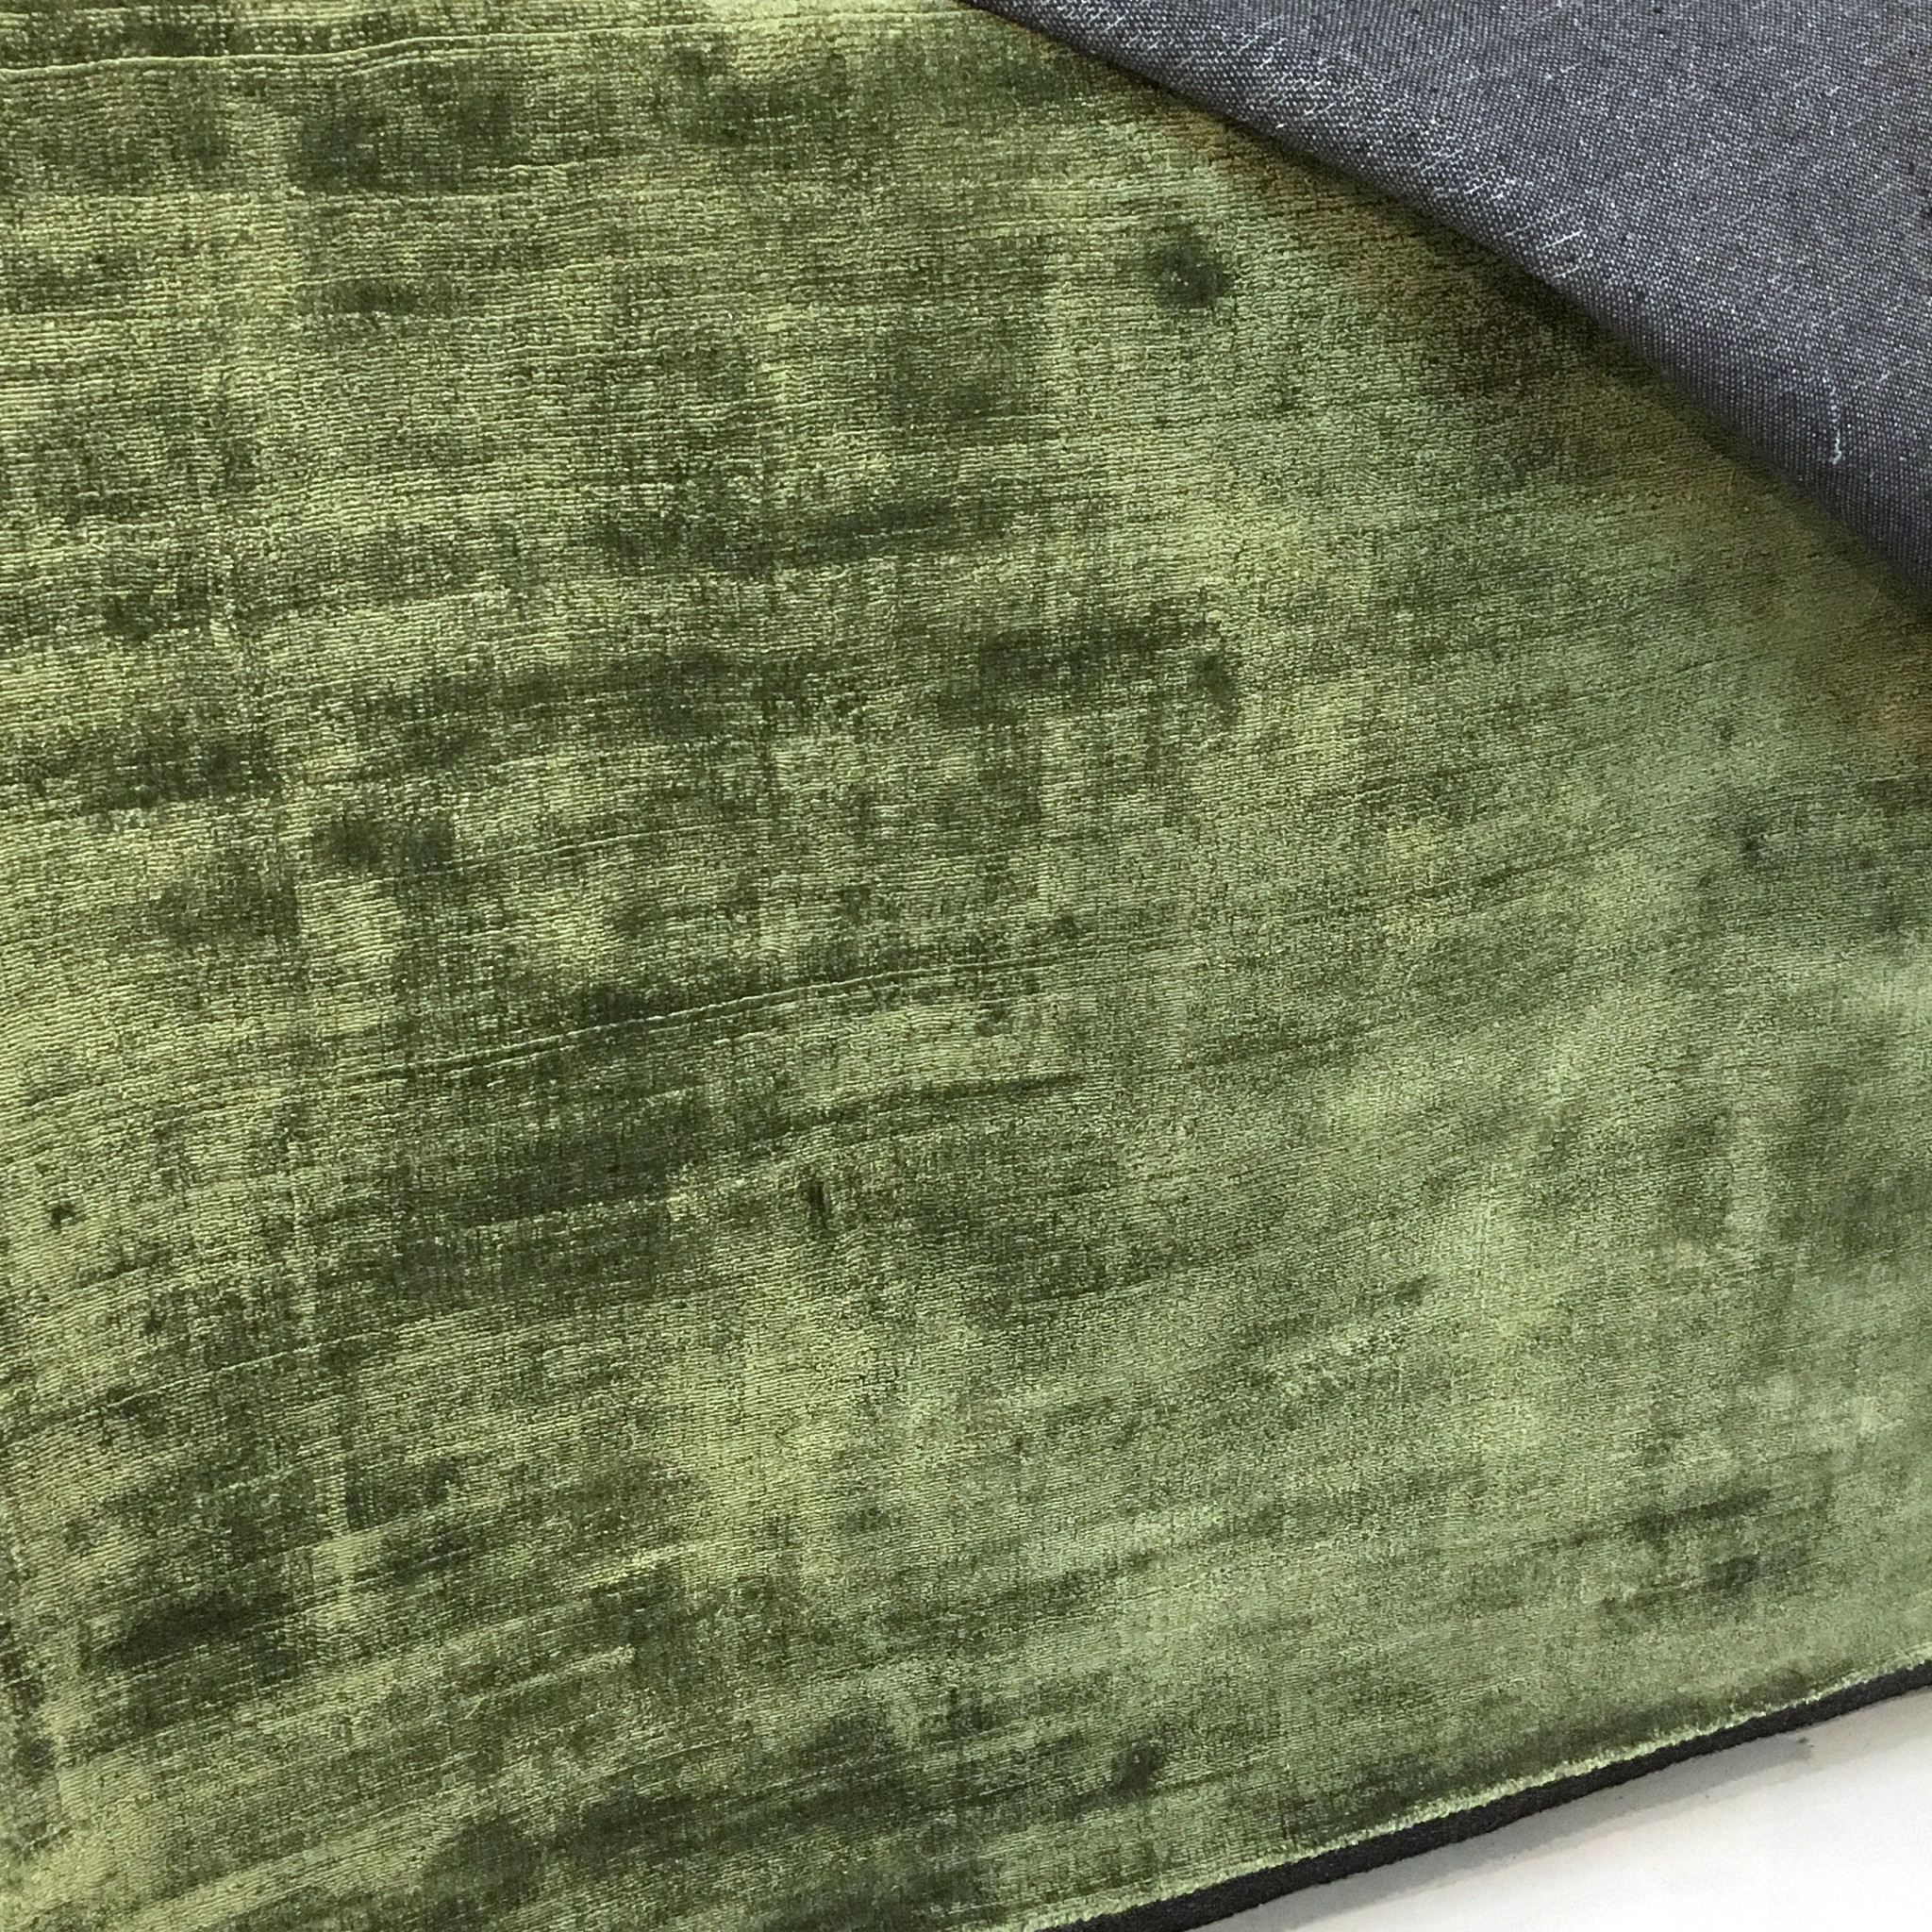 Large green luxurious rug